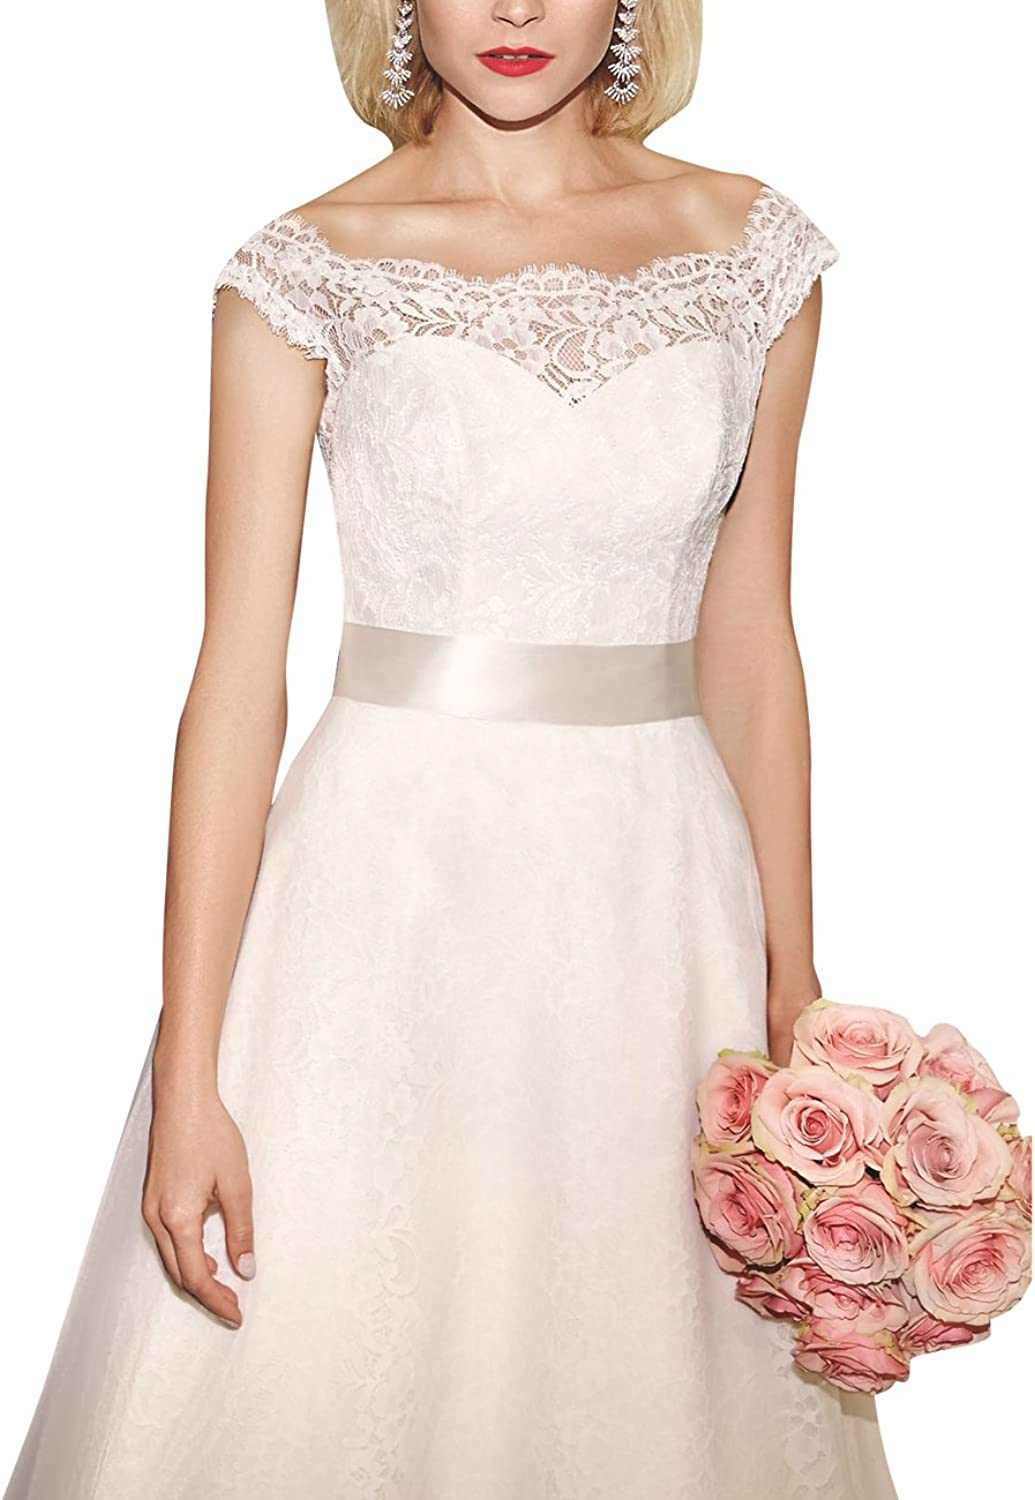 ModeC A Line Elegant Scoop Neck Lace Bridal Wedding Dress with Buttons